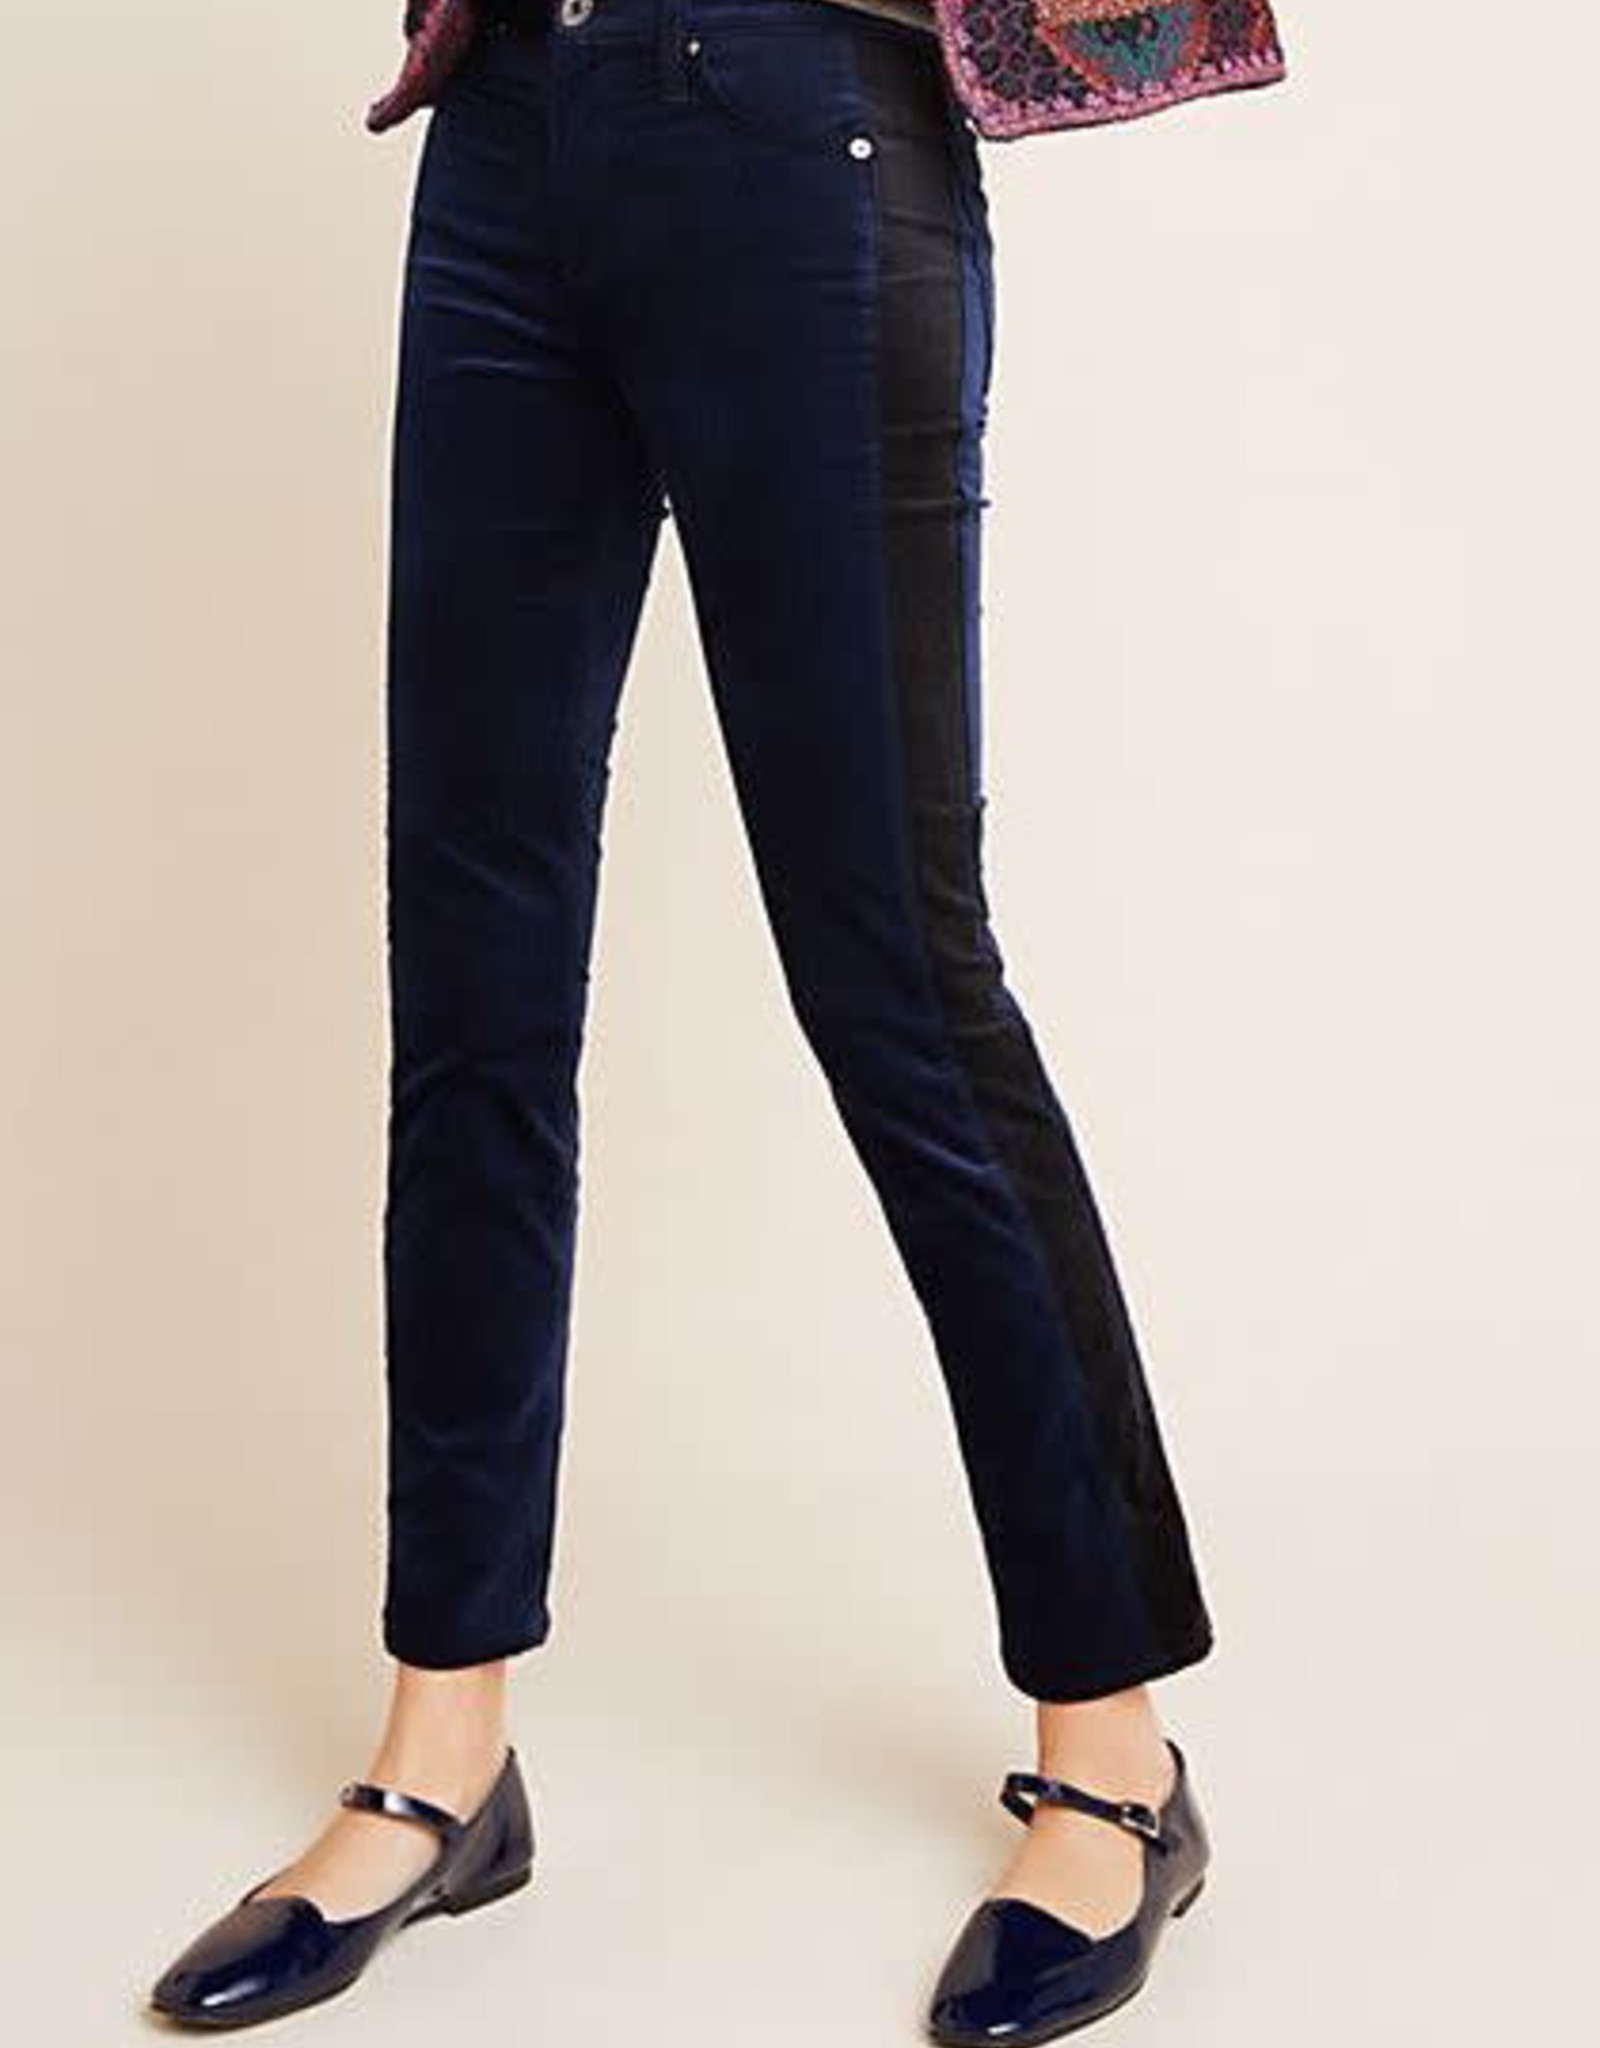 ADRIANO GOLDSCHMIED - The Mari High Rise Pant